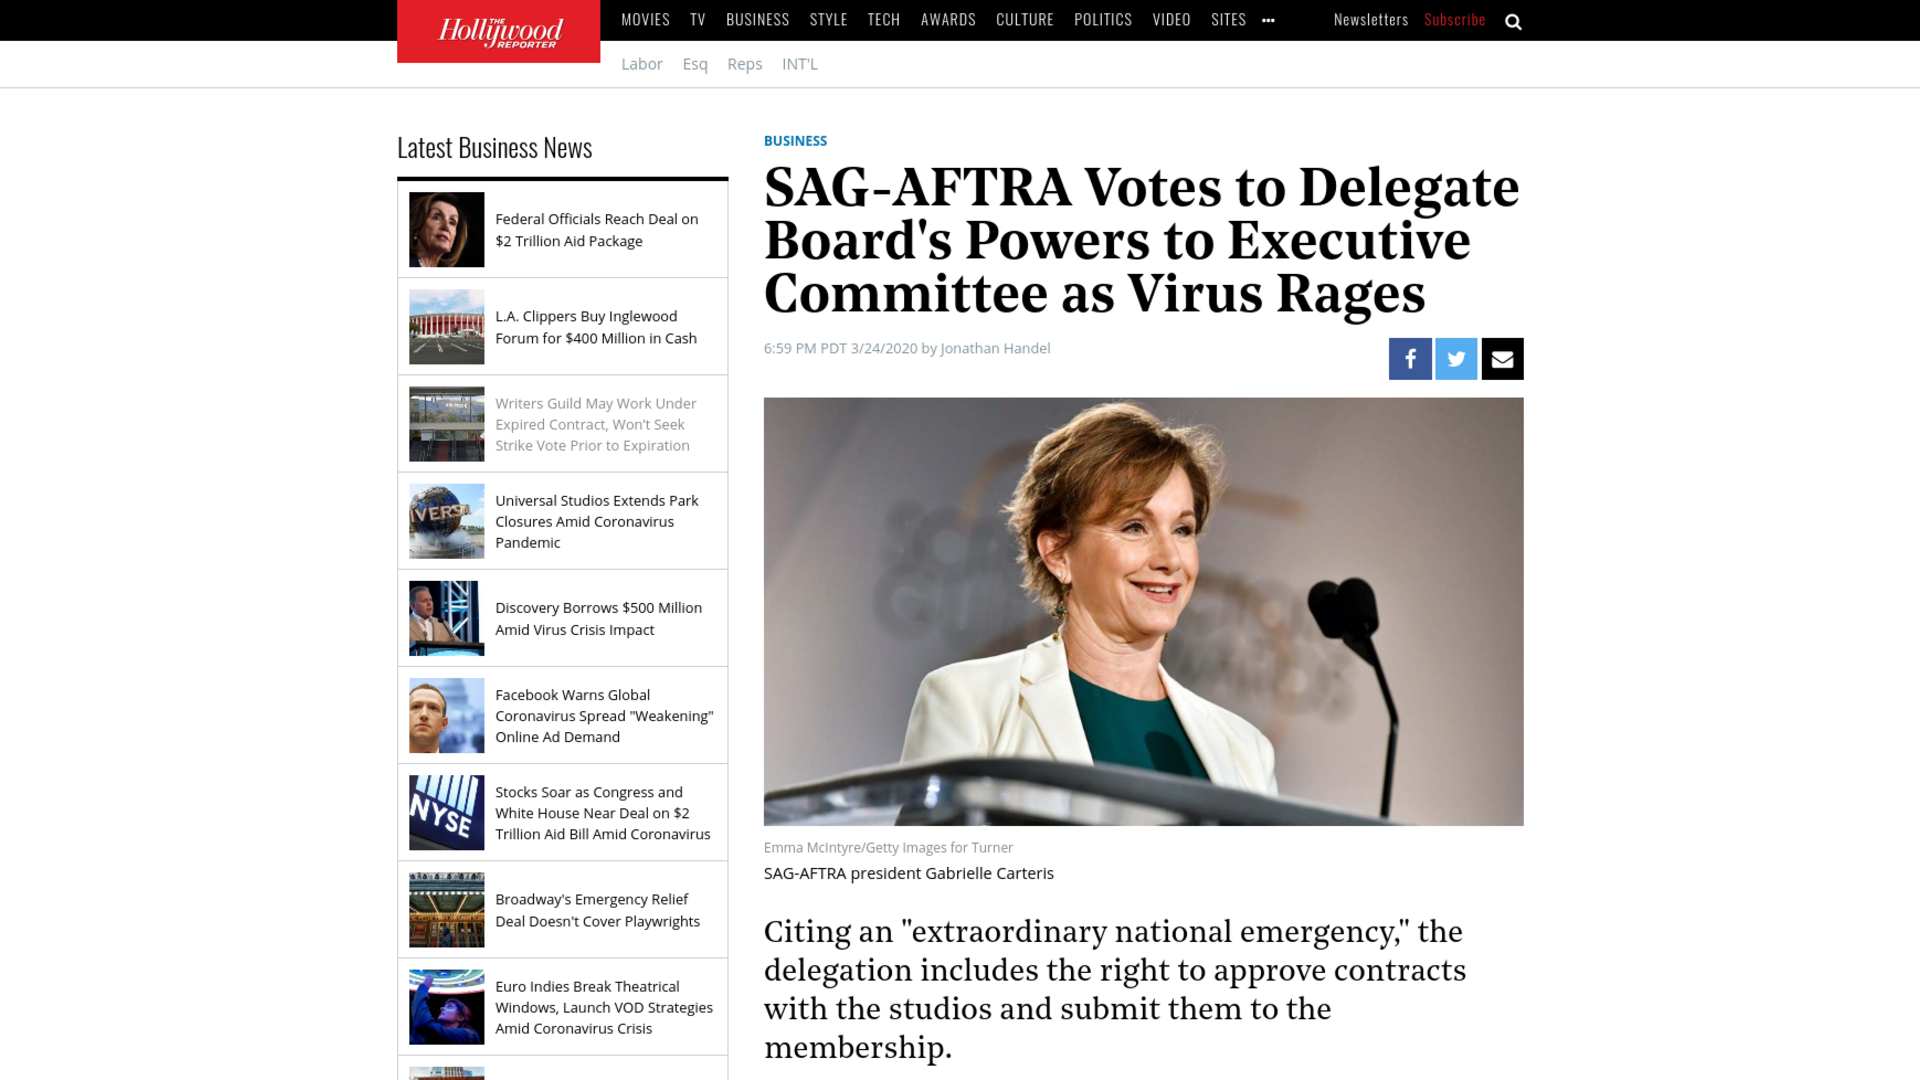 Fairness Rocks News SAG-AFTRA Votes to Delegate Board's Powers to Executive Committee as Virus Rages